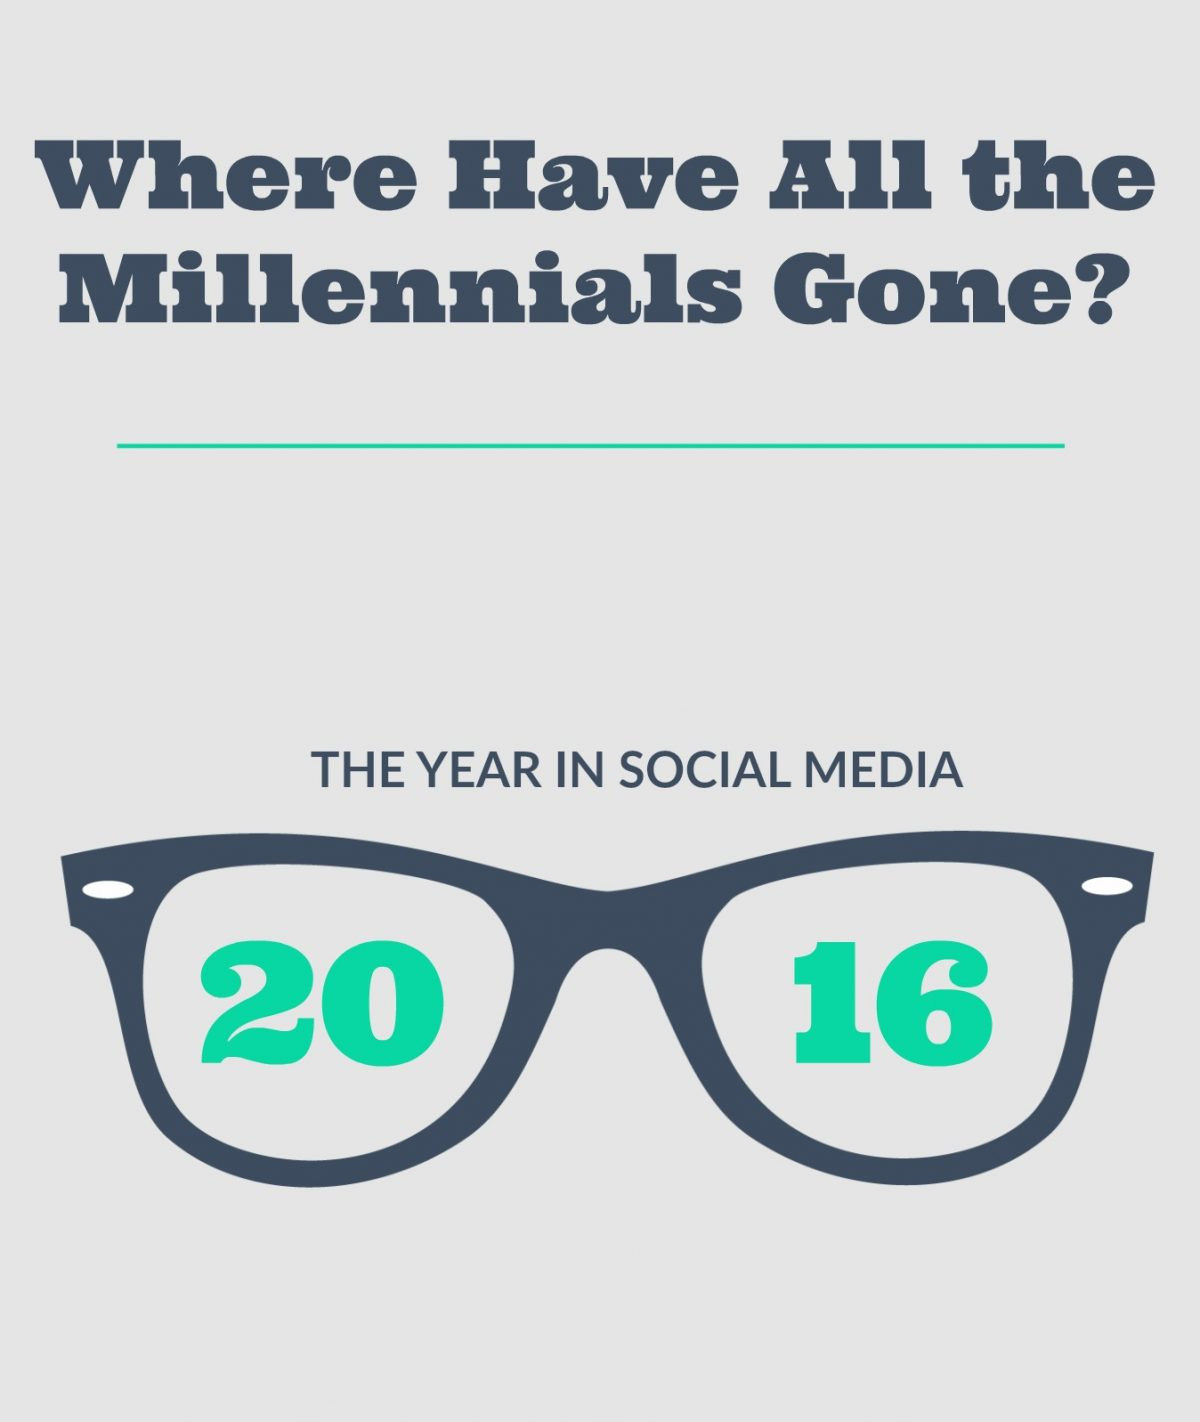 Where Have All the Millennials Gone? The Year In Social Media